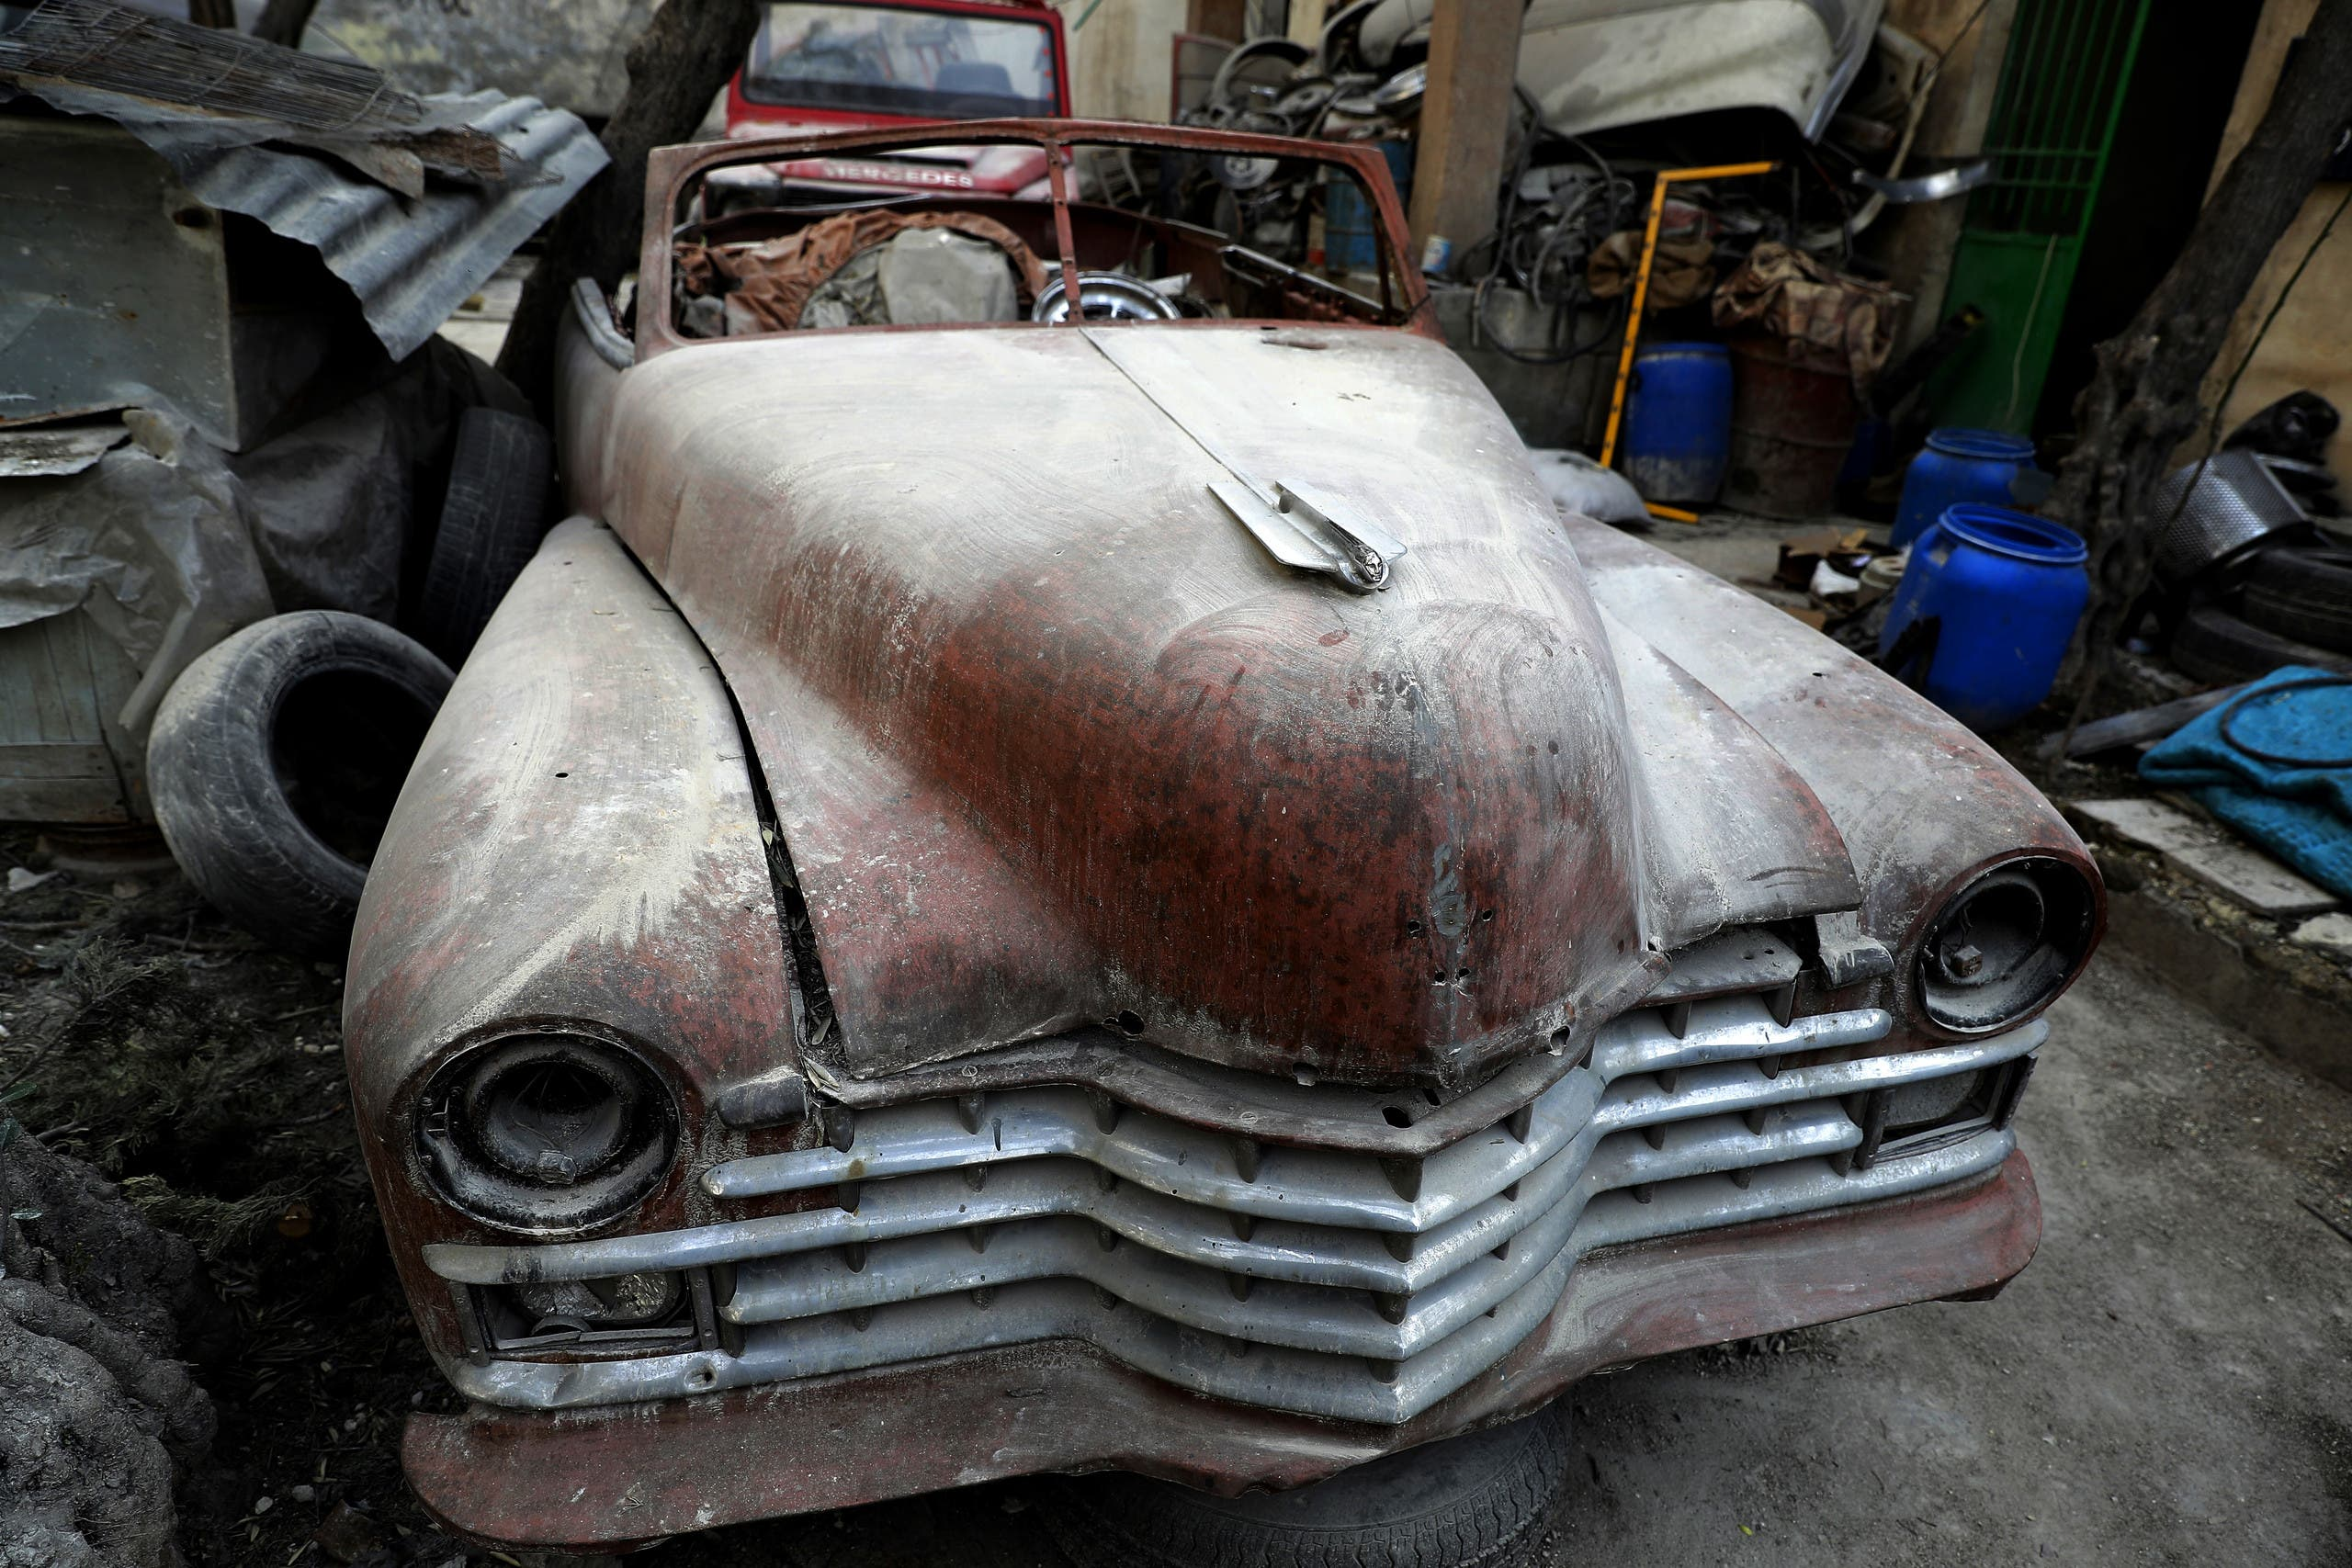 A picture taken on March 9, 2017, shows a 1947 Cadillac parked in the garden of Mohammad Mohiedine Anis' home in Aleppo's formerly rebel-held al-Shaar neighbourhood. AFP